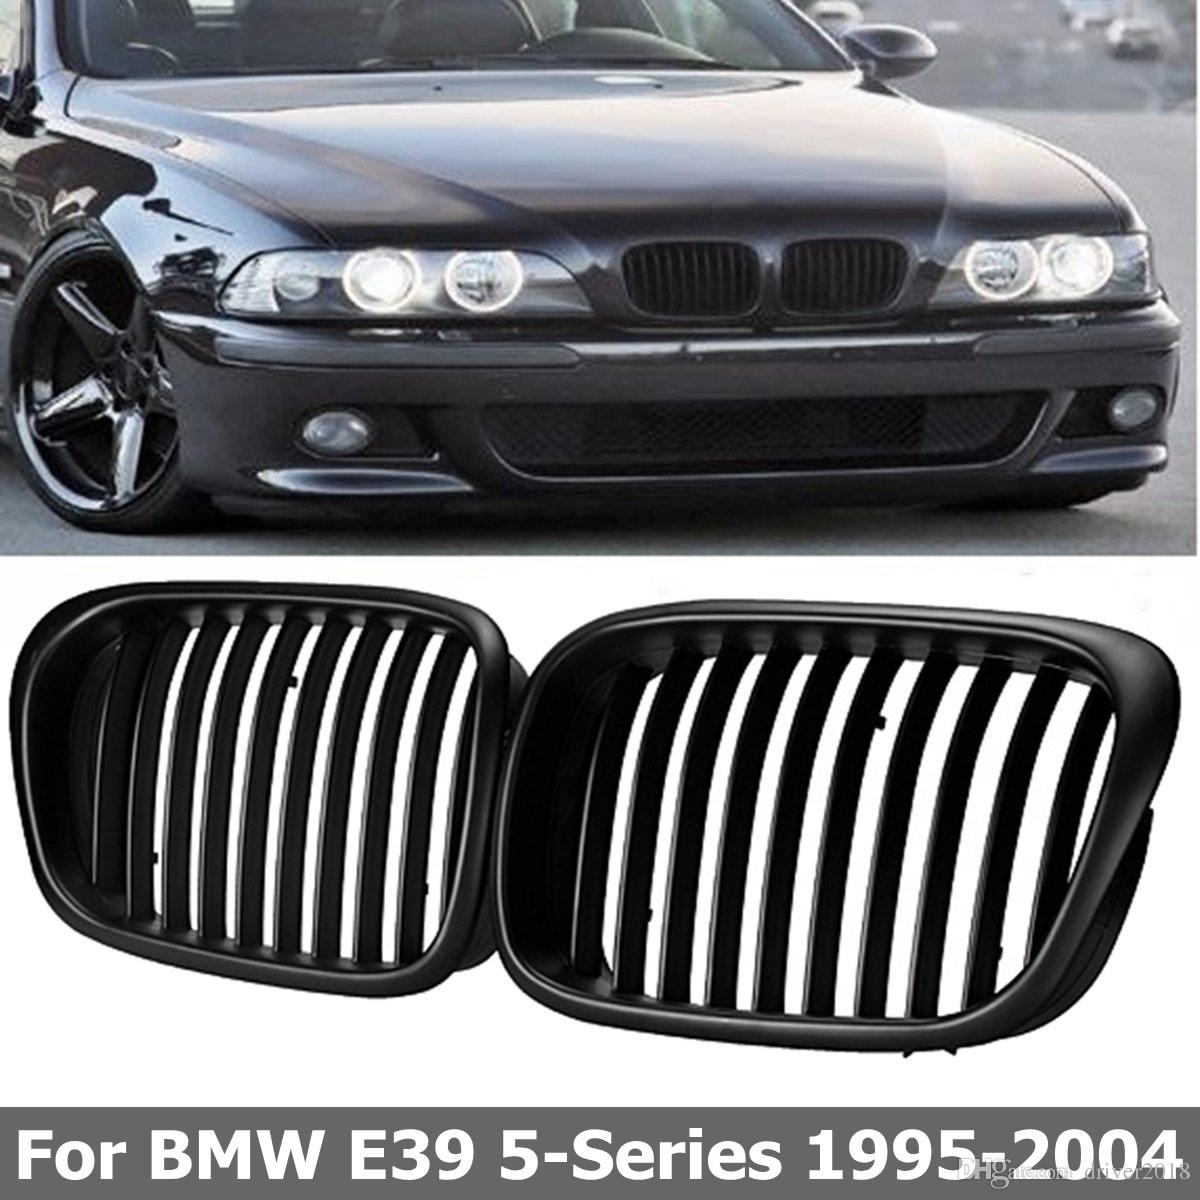 c14ca7ac1c4 OEM Style Car Front Black Wide Kidney Grille Grill For BMW E39 5 Series  1997 1998 1999 2000 2001 2002 2003 Car Interior Accessories Car Interior  And ...